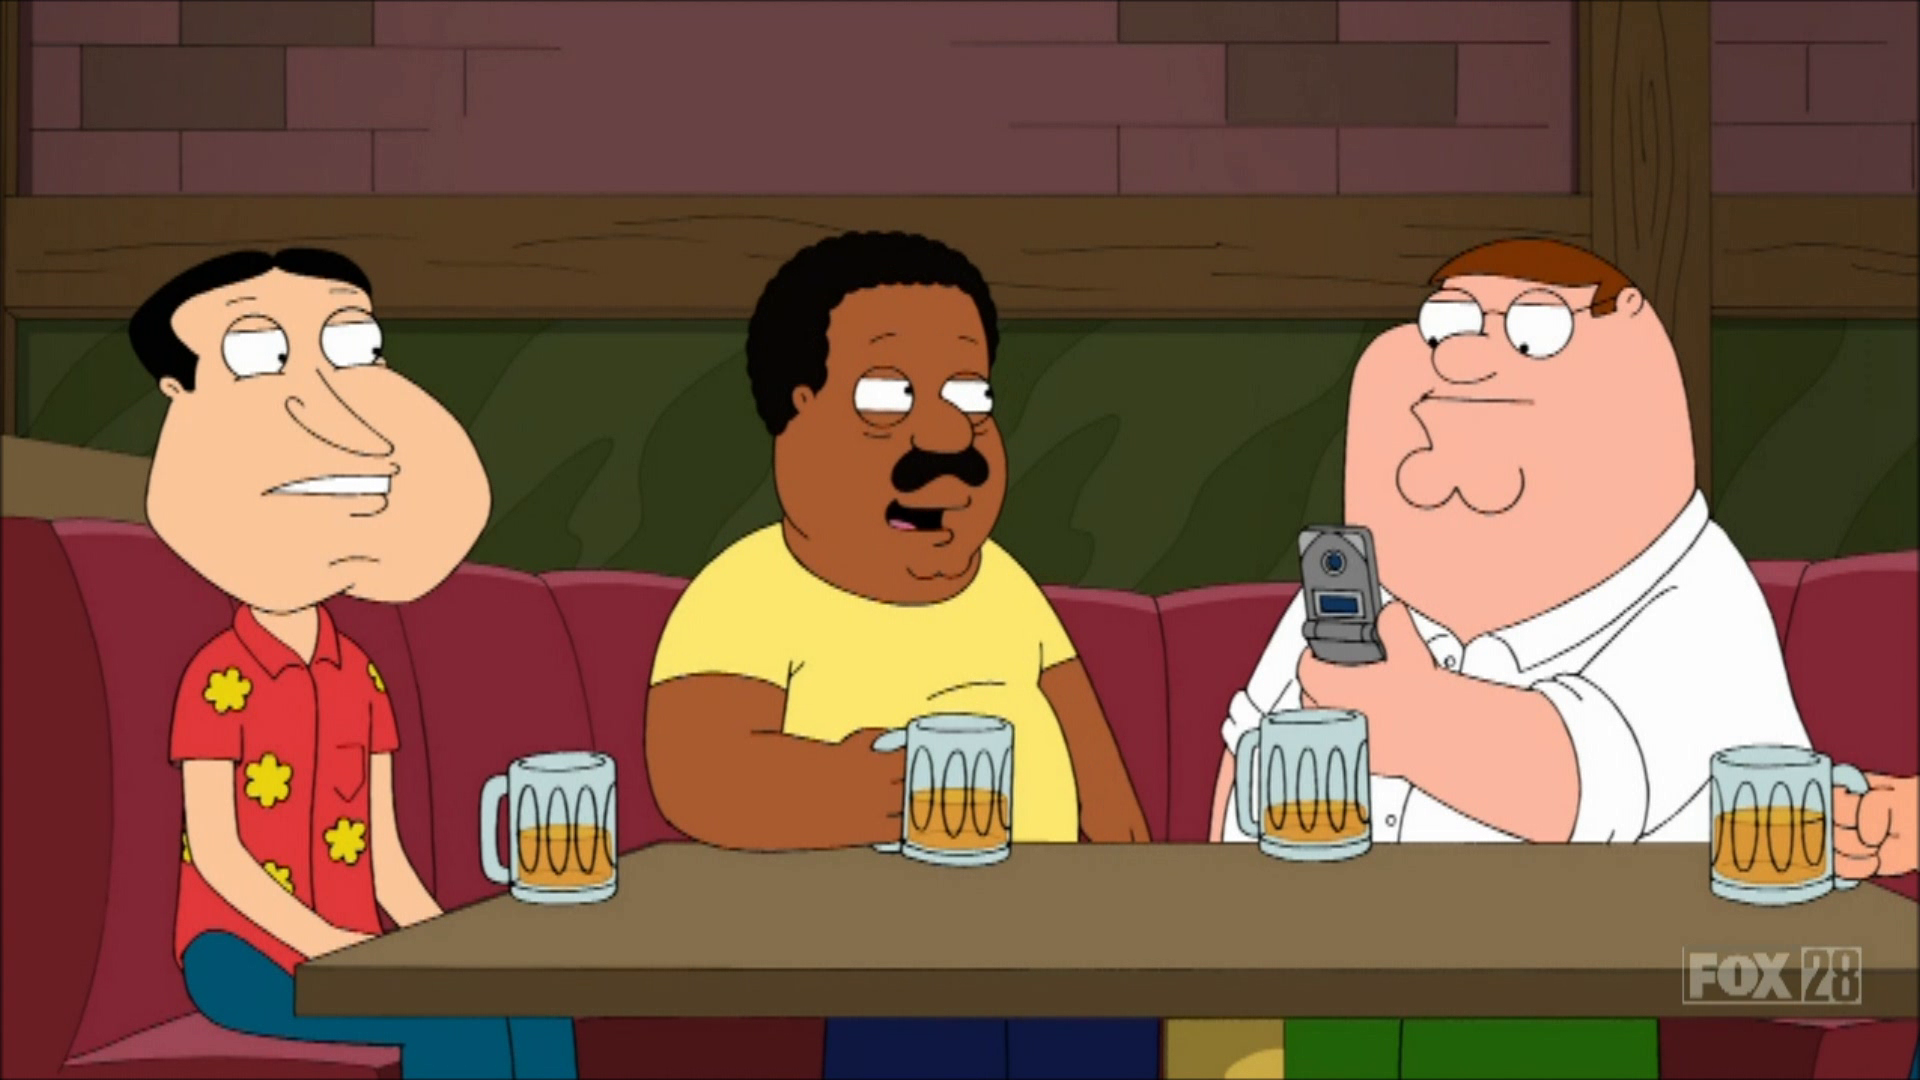 Cleveland Family Guy Toys : The cleveland show theme song family guy wiki fandom